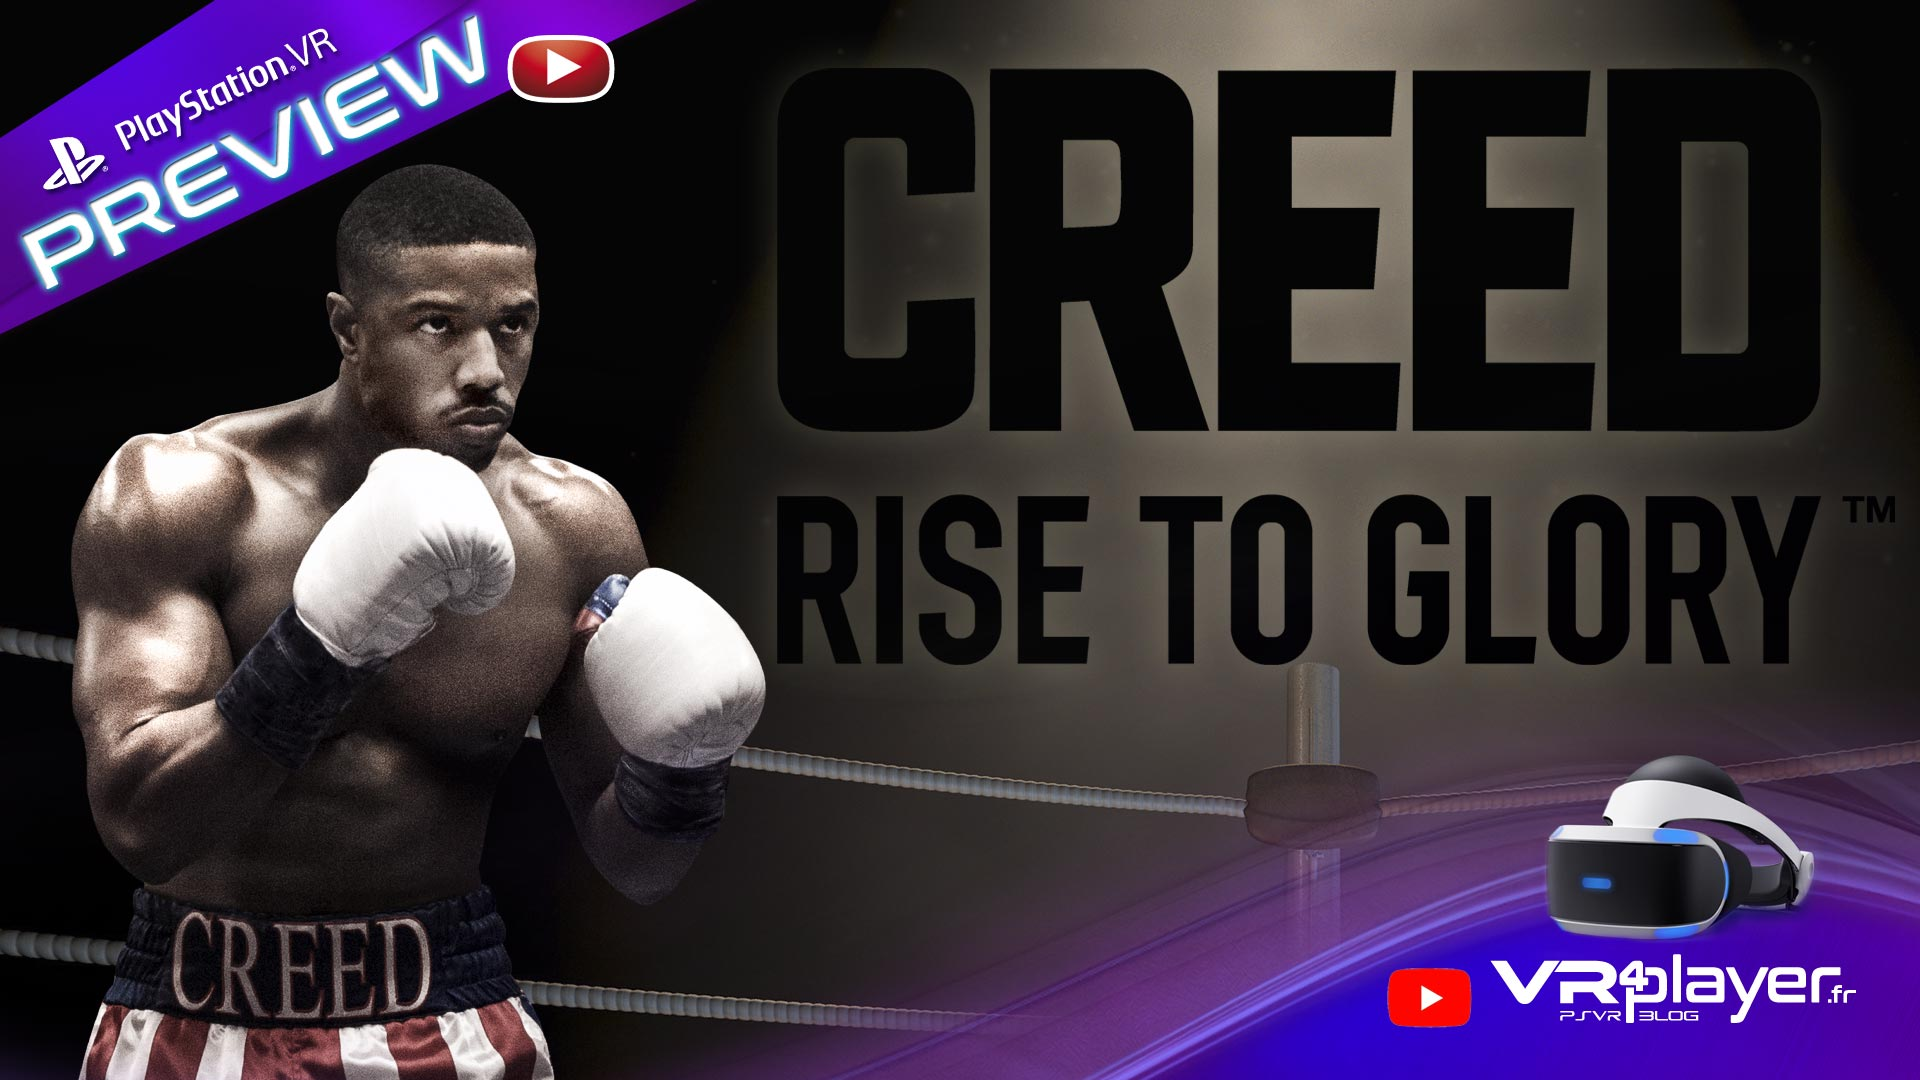 CREED Rise to Glory en preview PSVR vr4player.fr